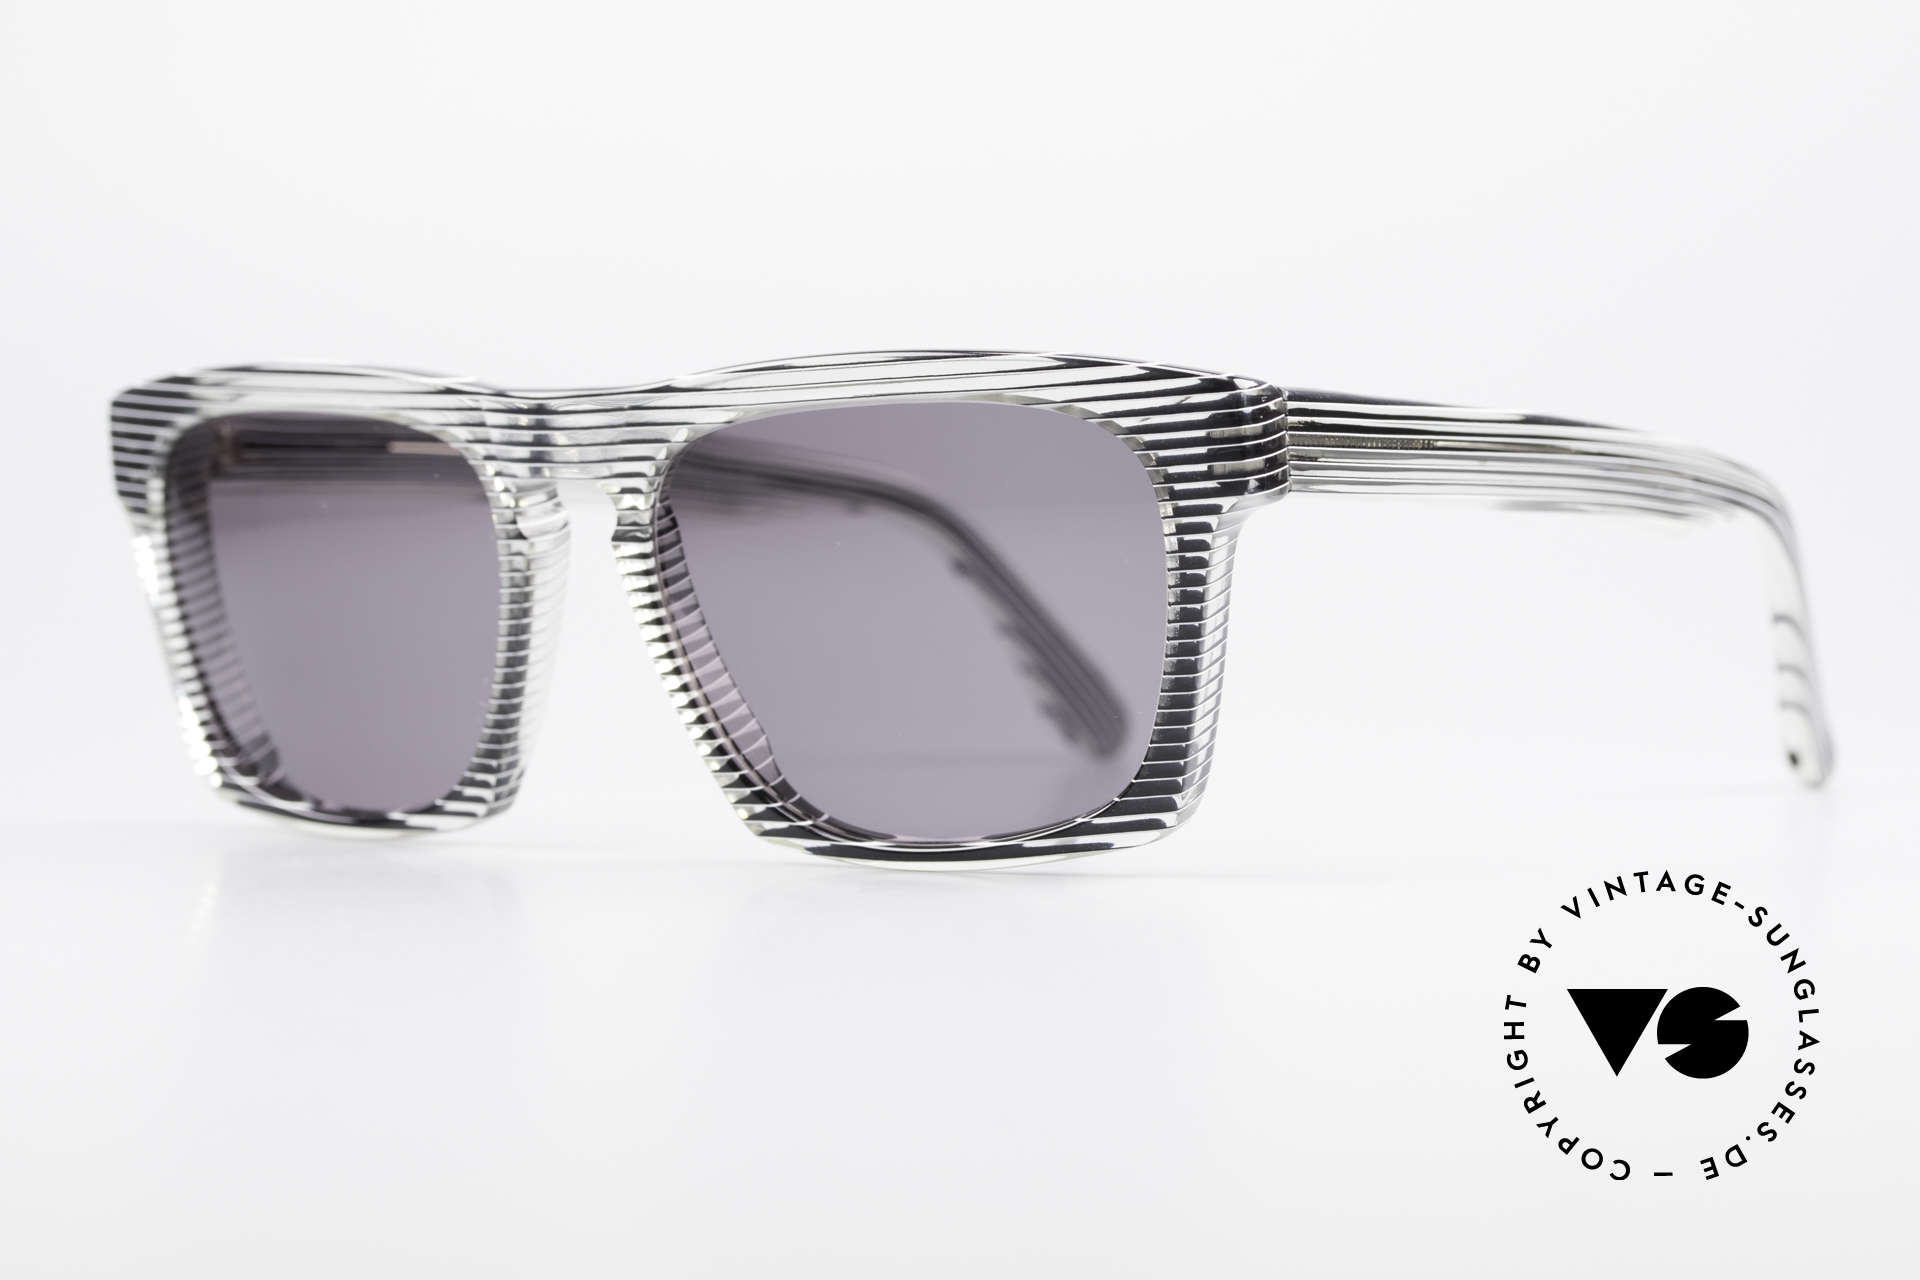 Alain Mikli 707 / 986 Unique Designer Sunglasses, with gray tinted sun lenses (for 100% UV protection), Made for Men and Women